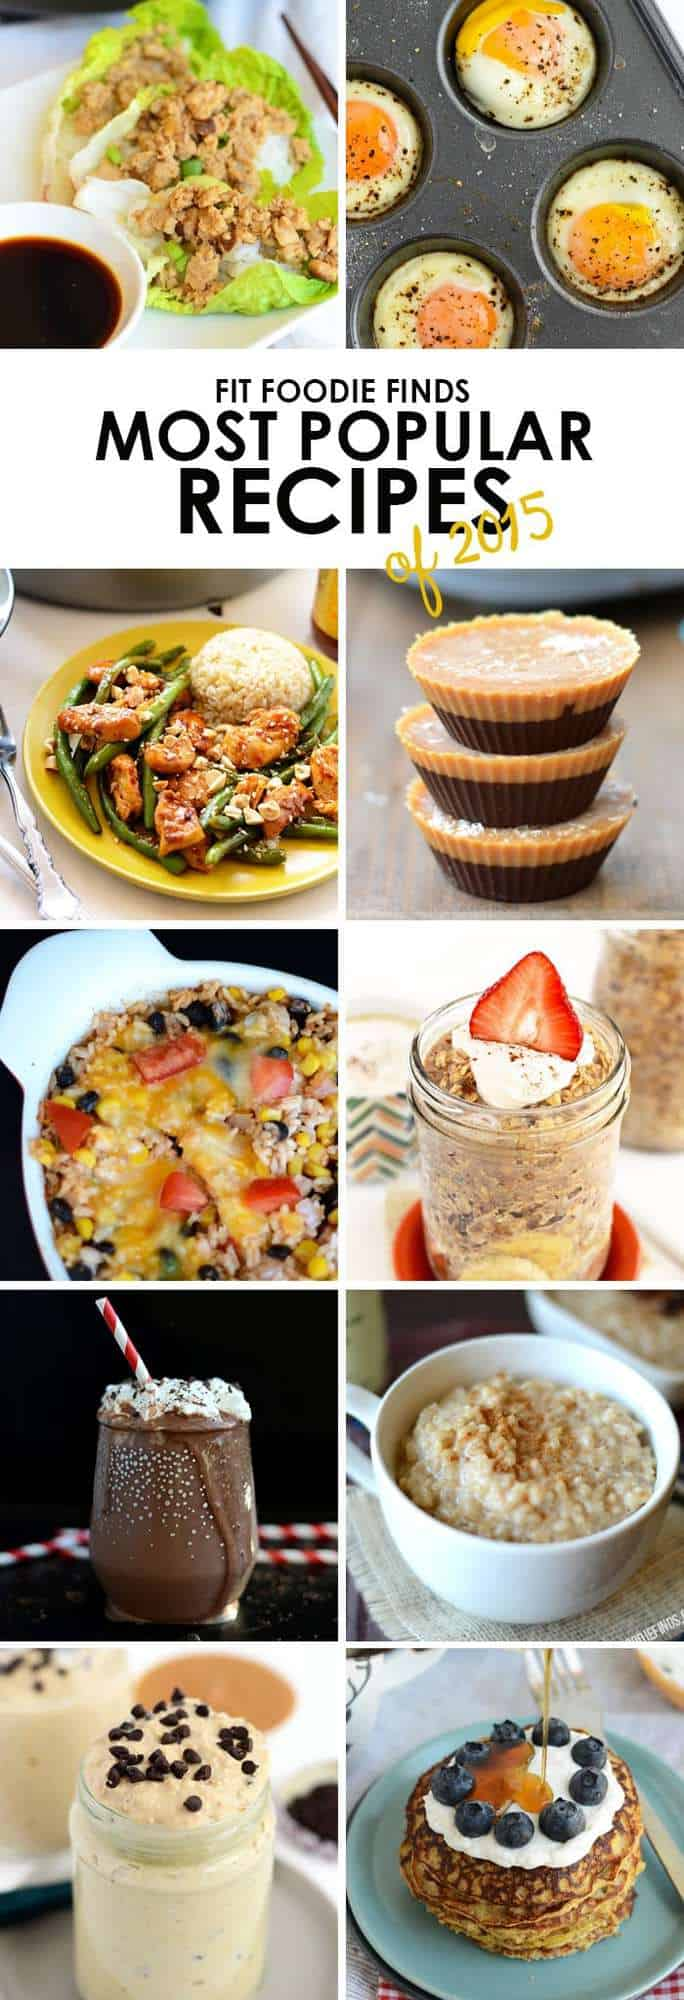 Fit Foodie Finds Best Recipes of 2015- from quinoa bakes, to overnight oats, to 30-minute meals! Check it out.